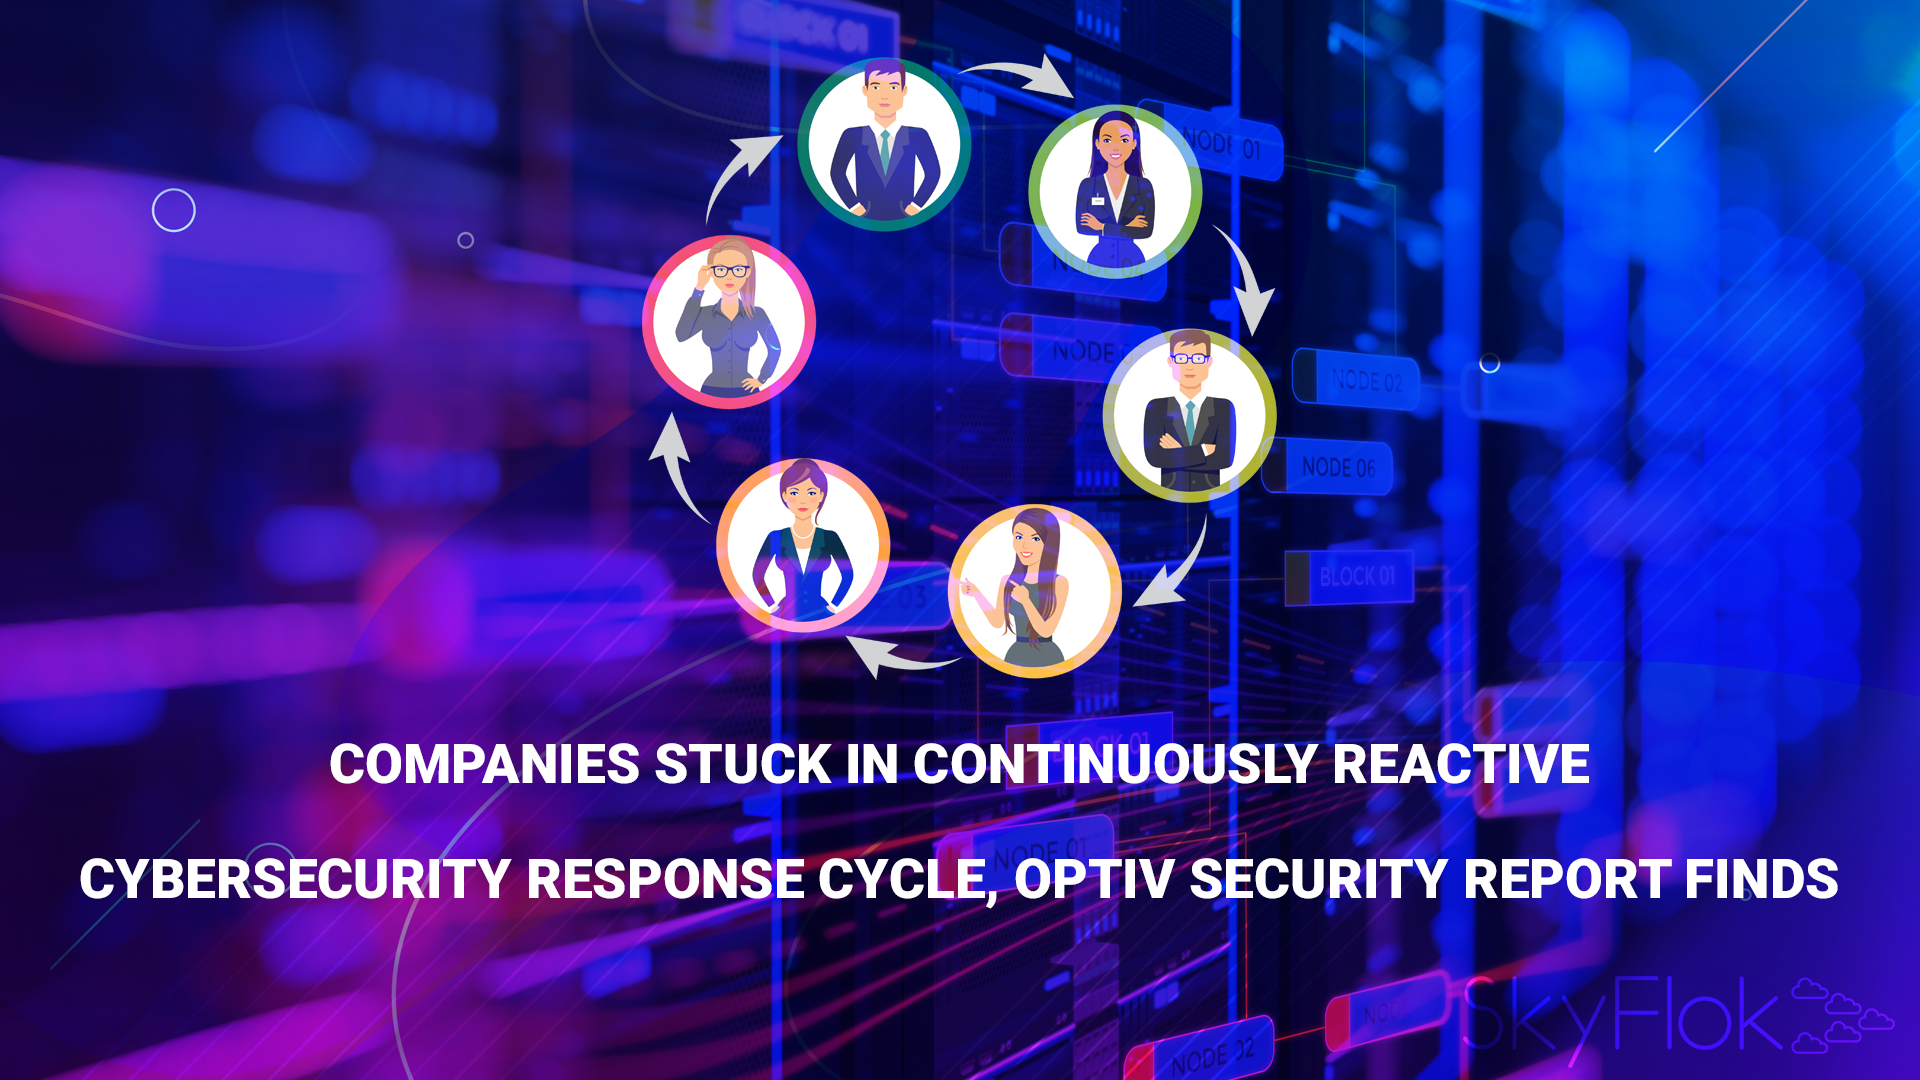 Companies Stuck in Continuously Reactive Cybersecurity Response Cycle, Optiv Security Report Finds